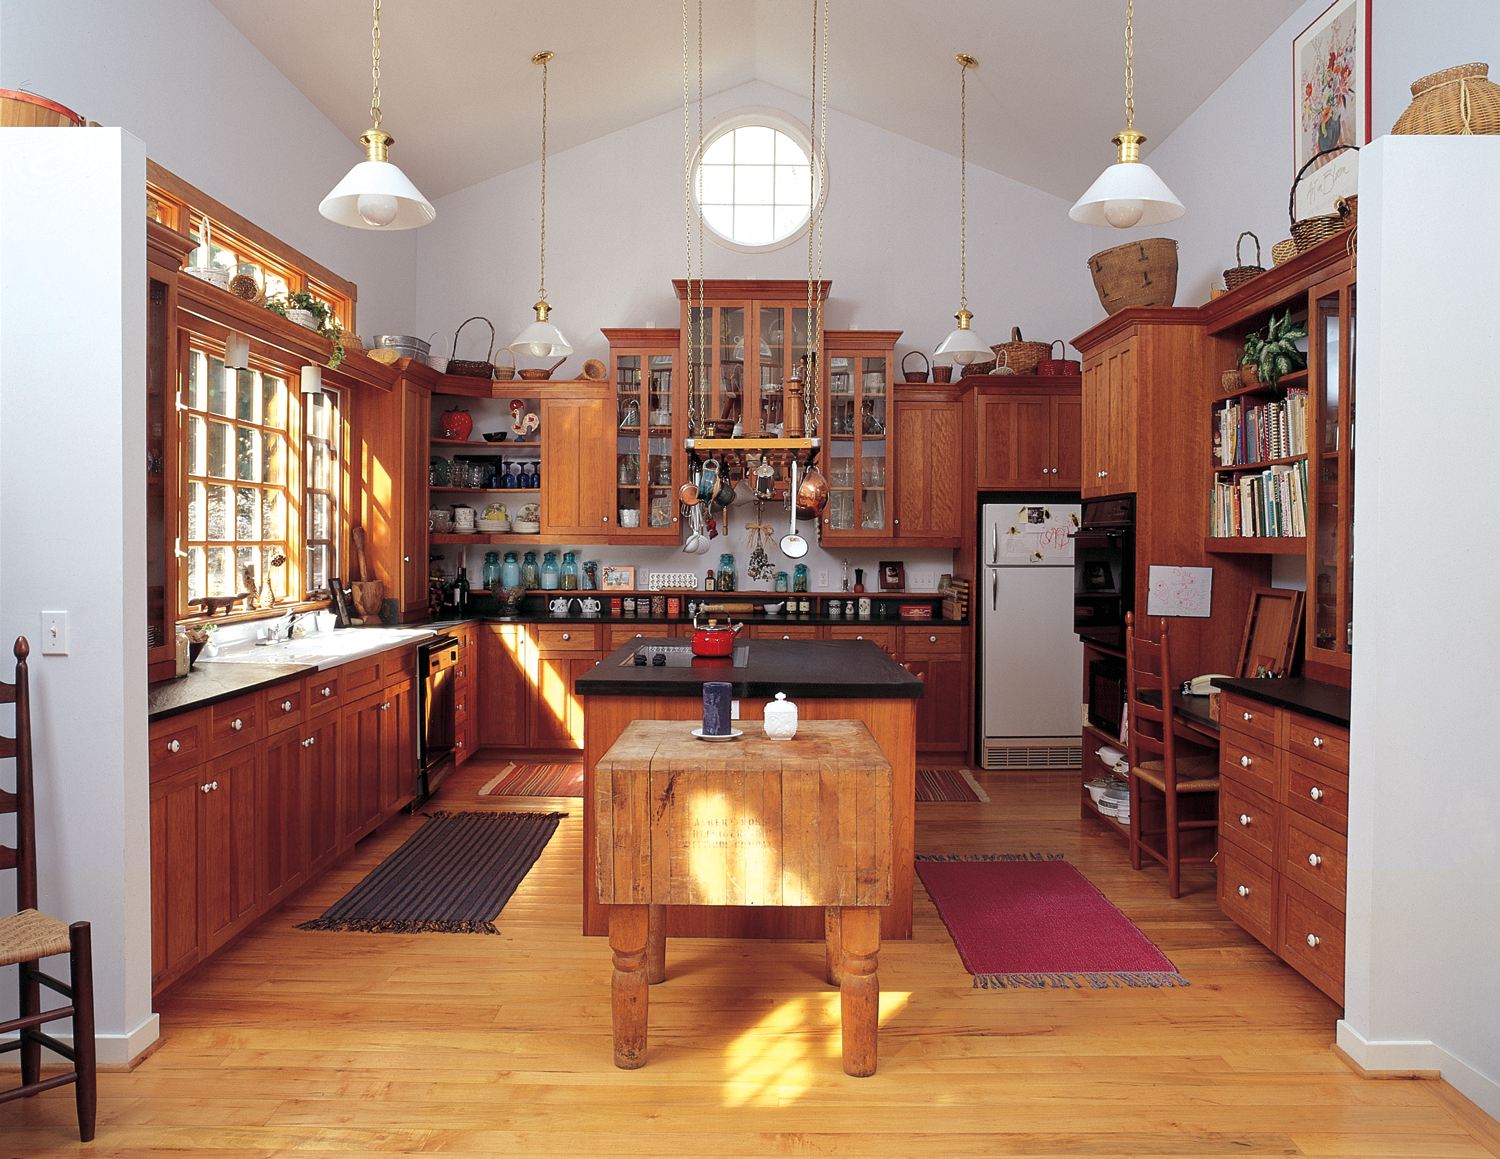 Cherry Kitchen with open shelves, display cabinets, pot rack, and chopping block.